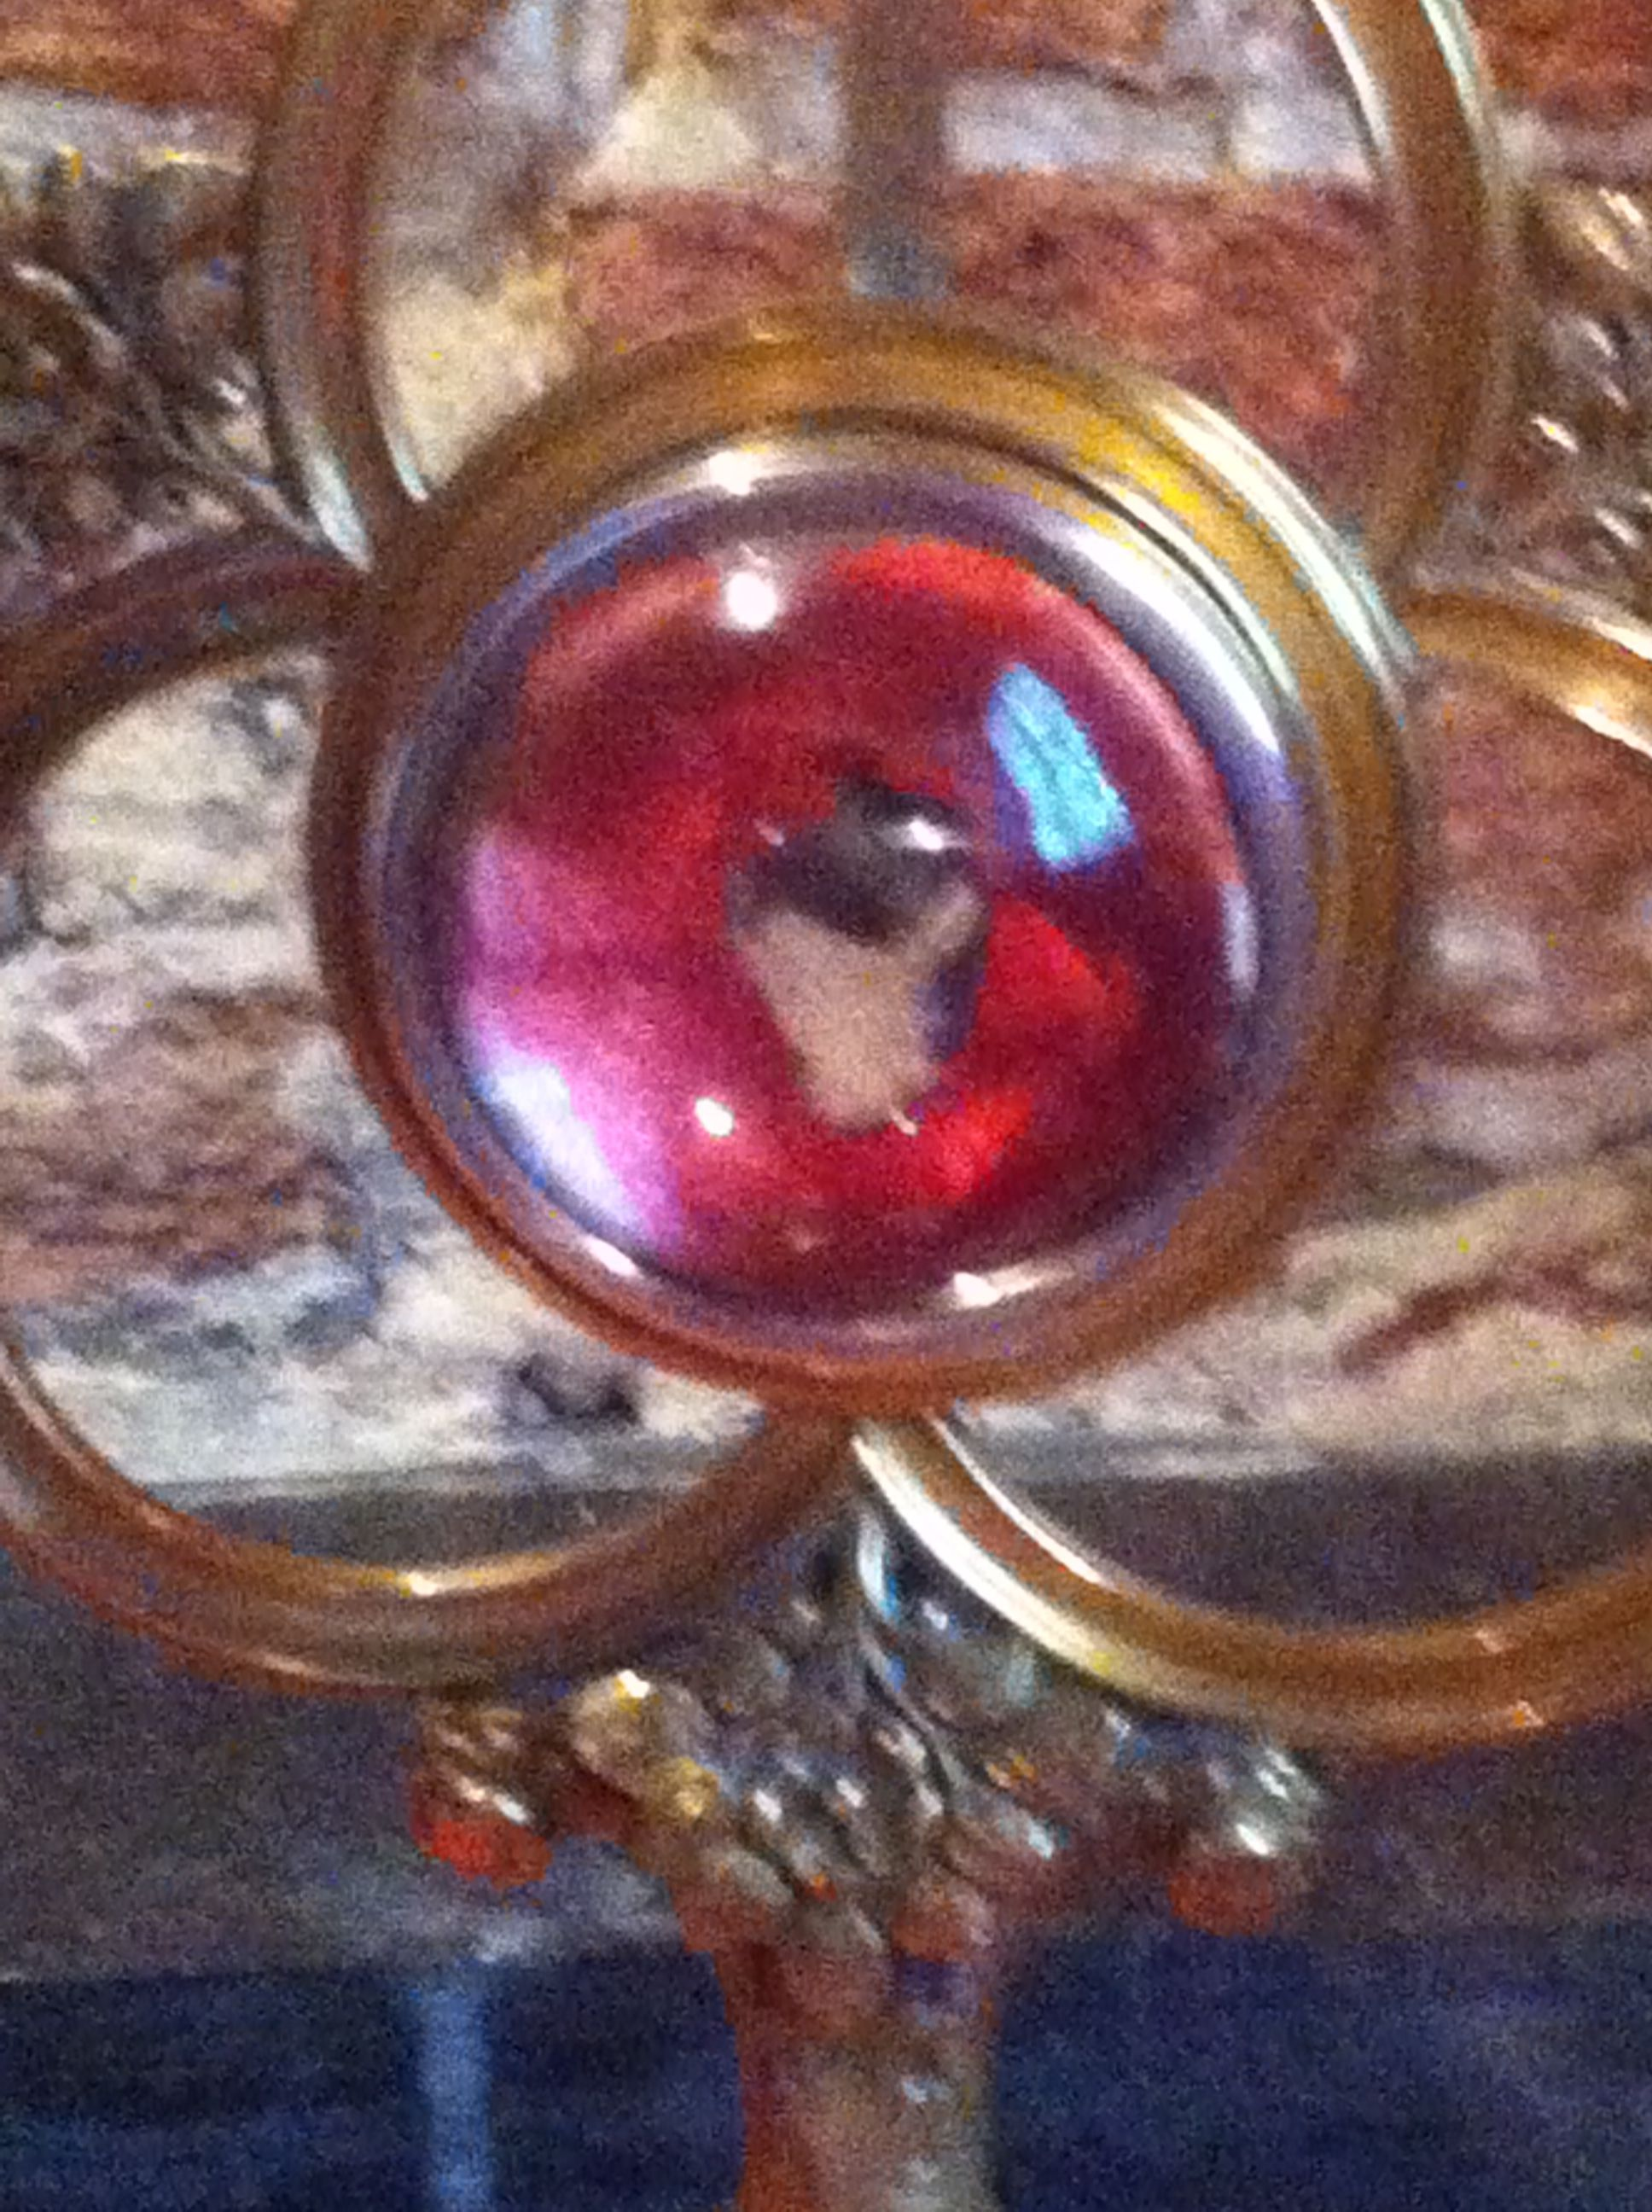 Relic Of The Eucharistic Miracle At The Maronite Abbey Of Bois Seigneur Isaac In Belgium Eucharistic Adoration Eucharistic Miracle Eucharist